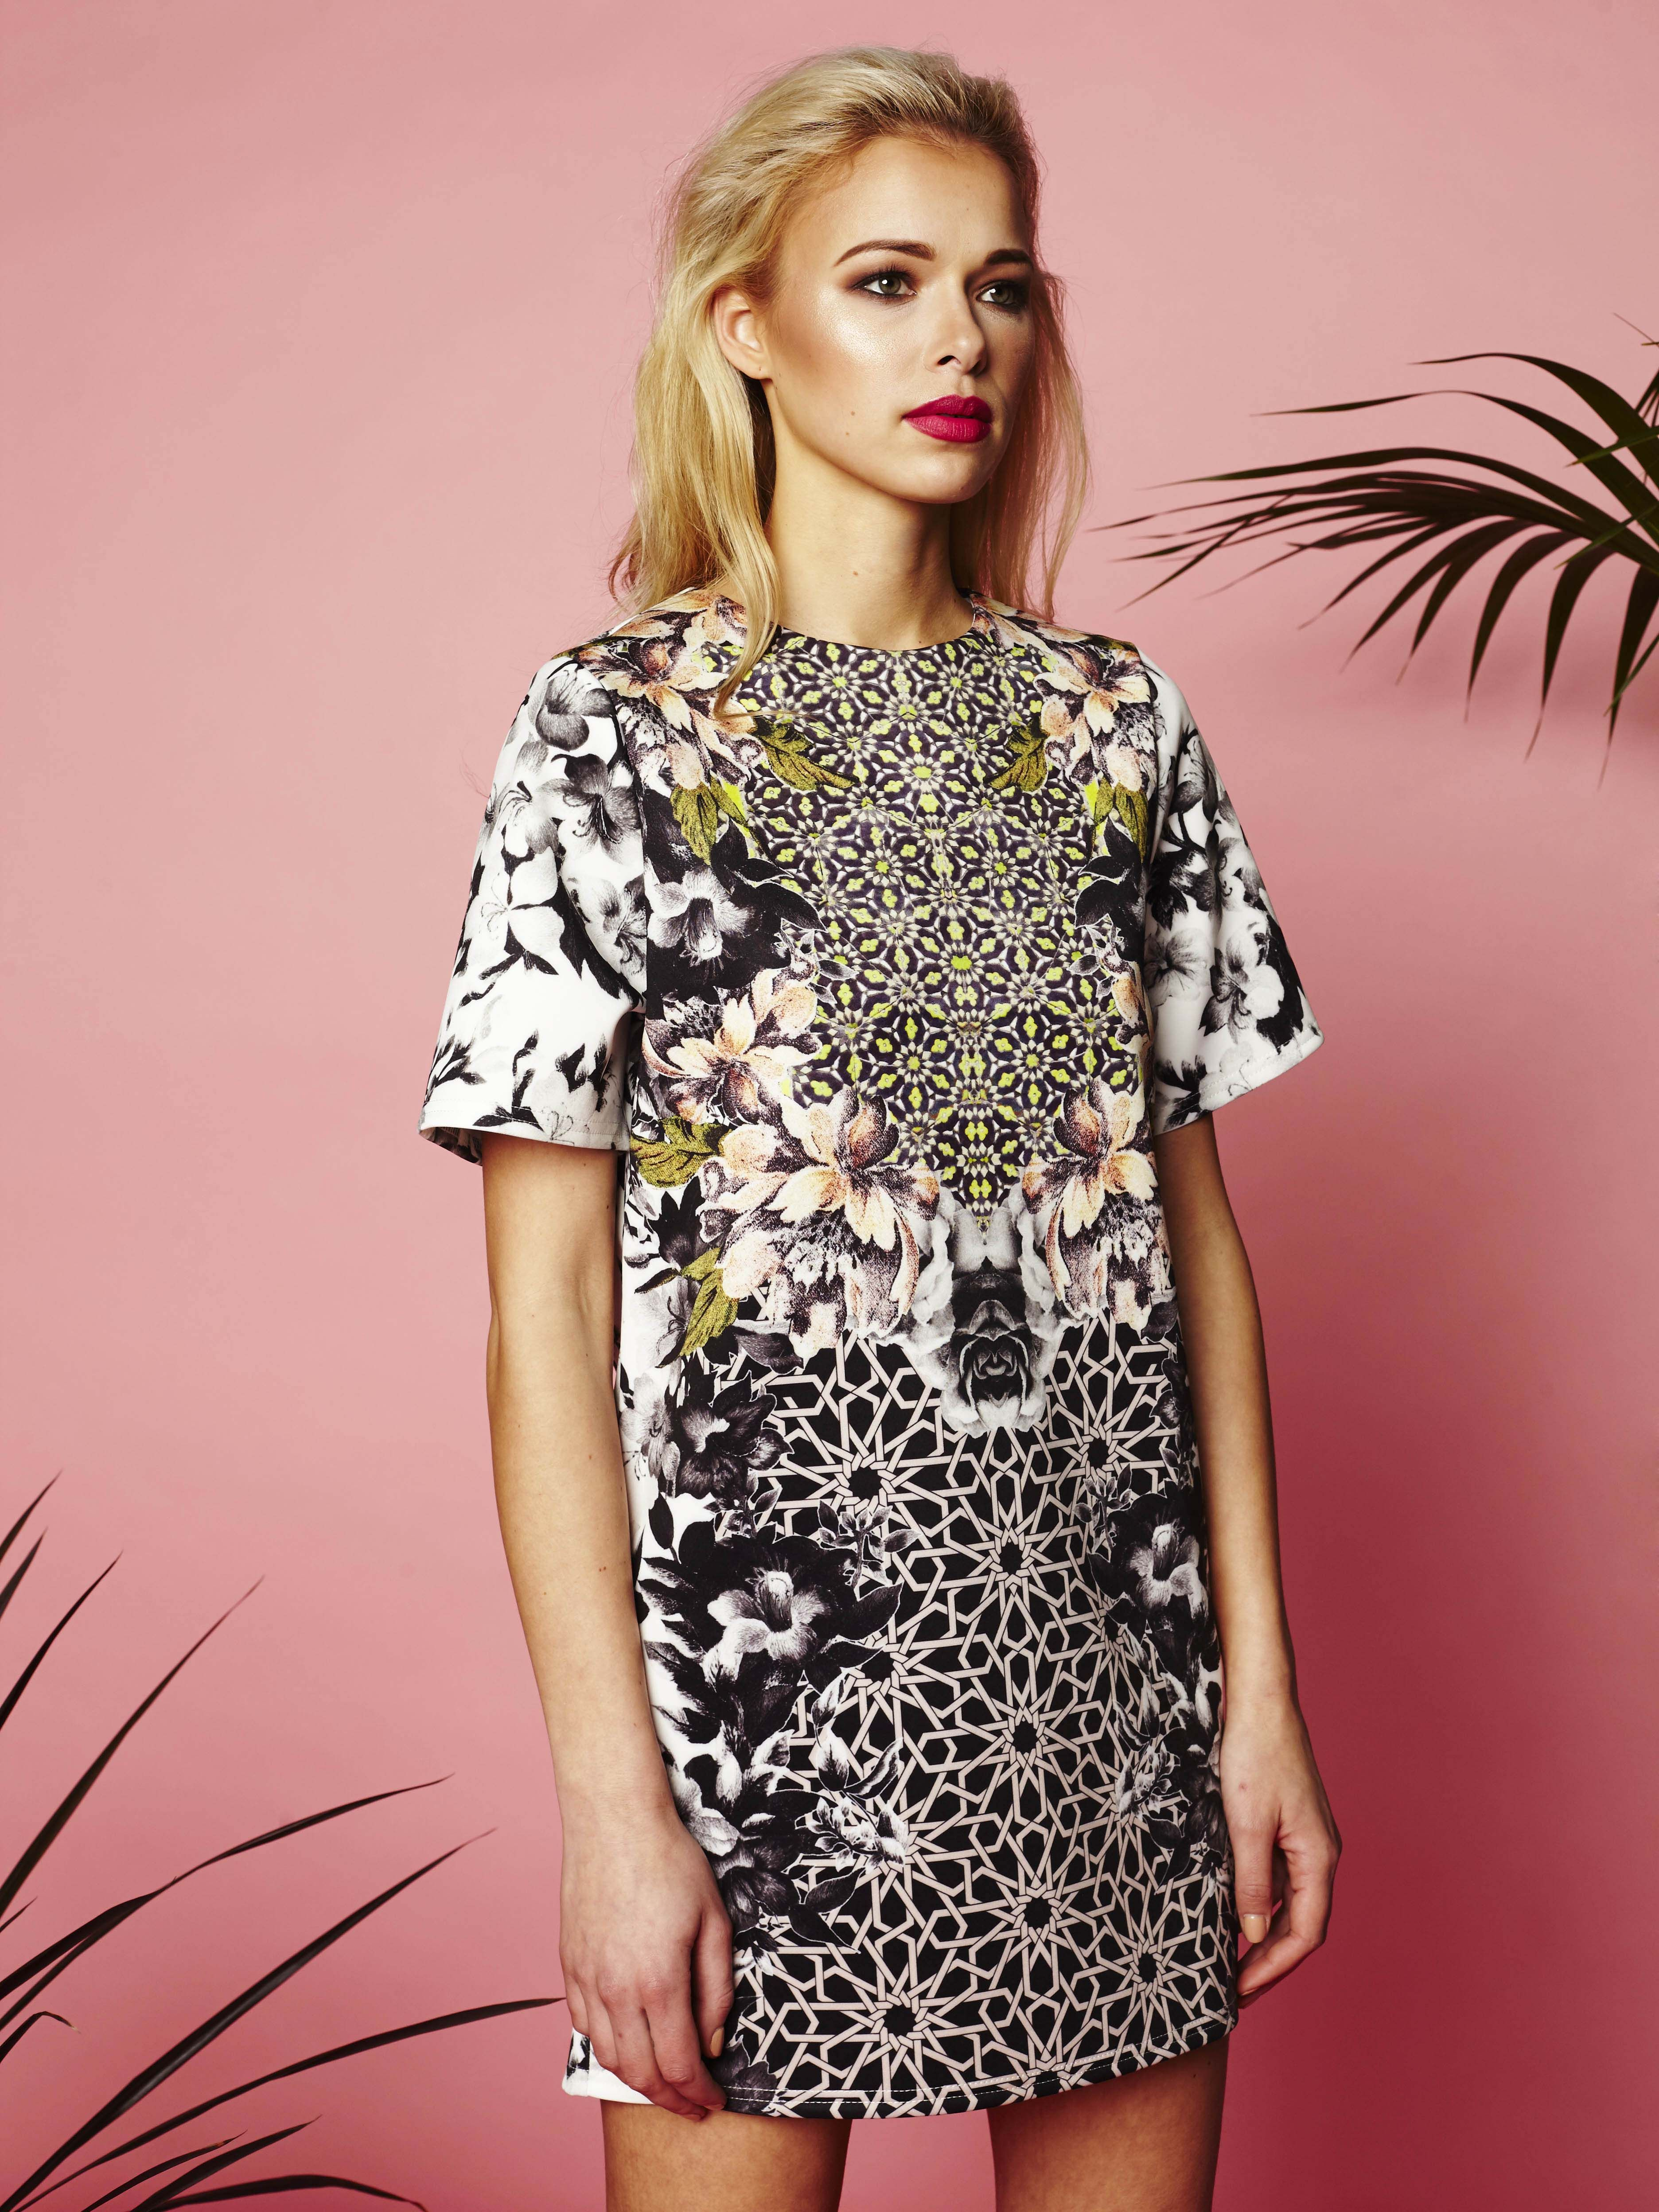 7ed5e90382 Harper shift dress: Womenswear mini dress, floral placement print with  geometric and floral patterns